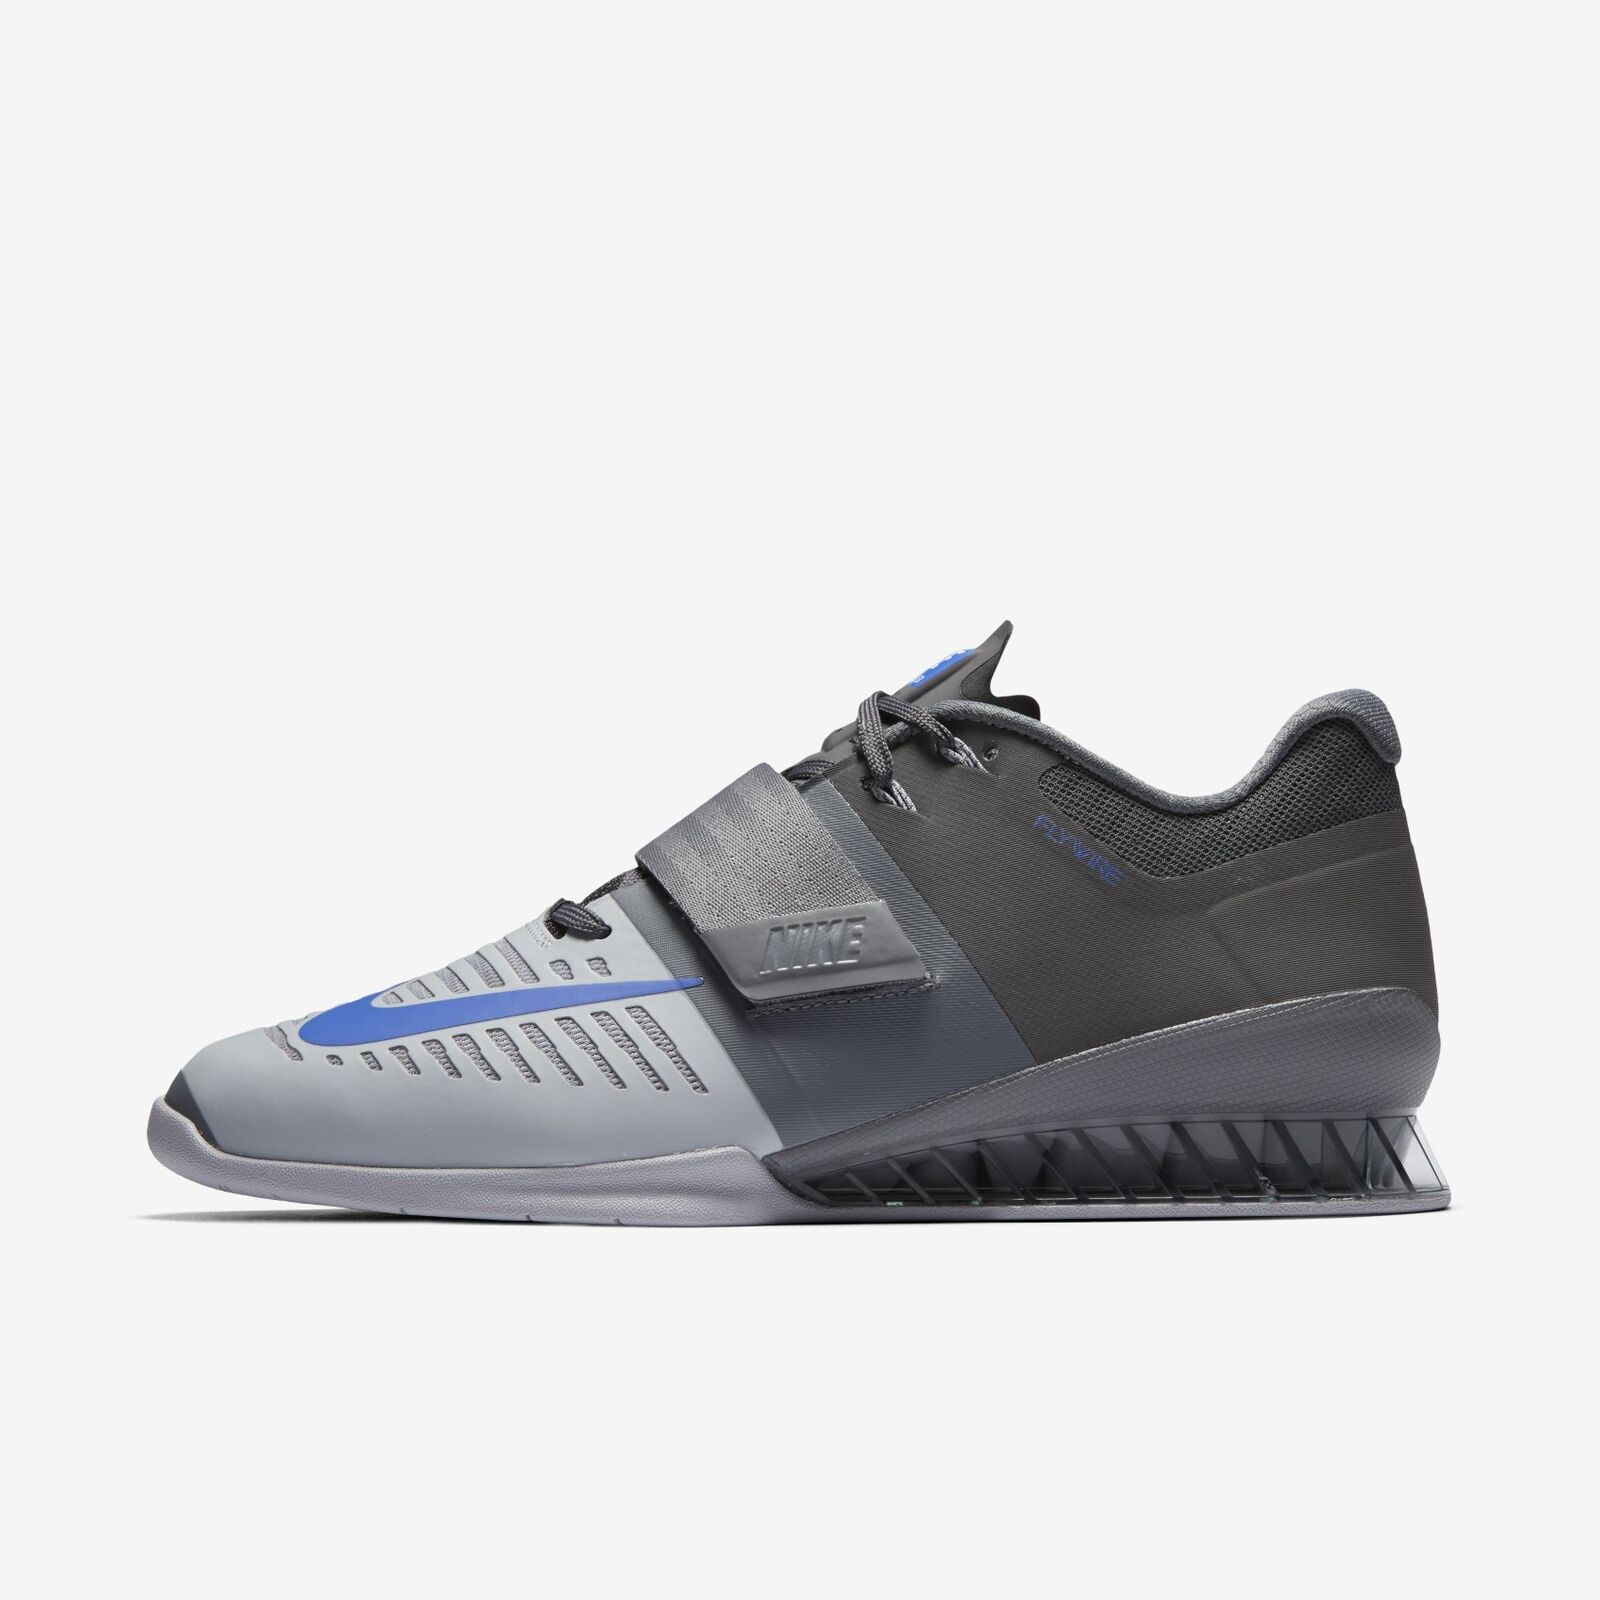 Uomo Nike Romaleos 3 Lifting Training Shoes Grey Blue Size 14 852933 001 NIB